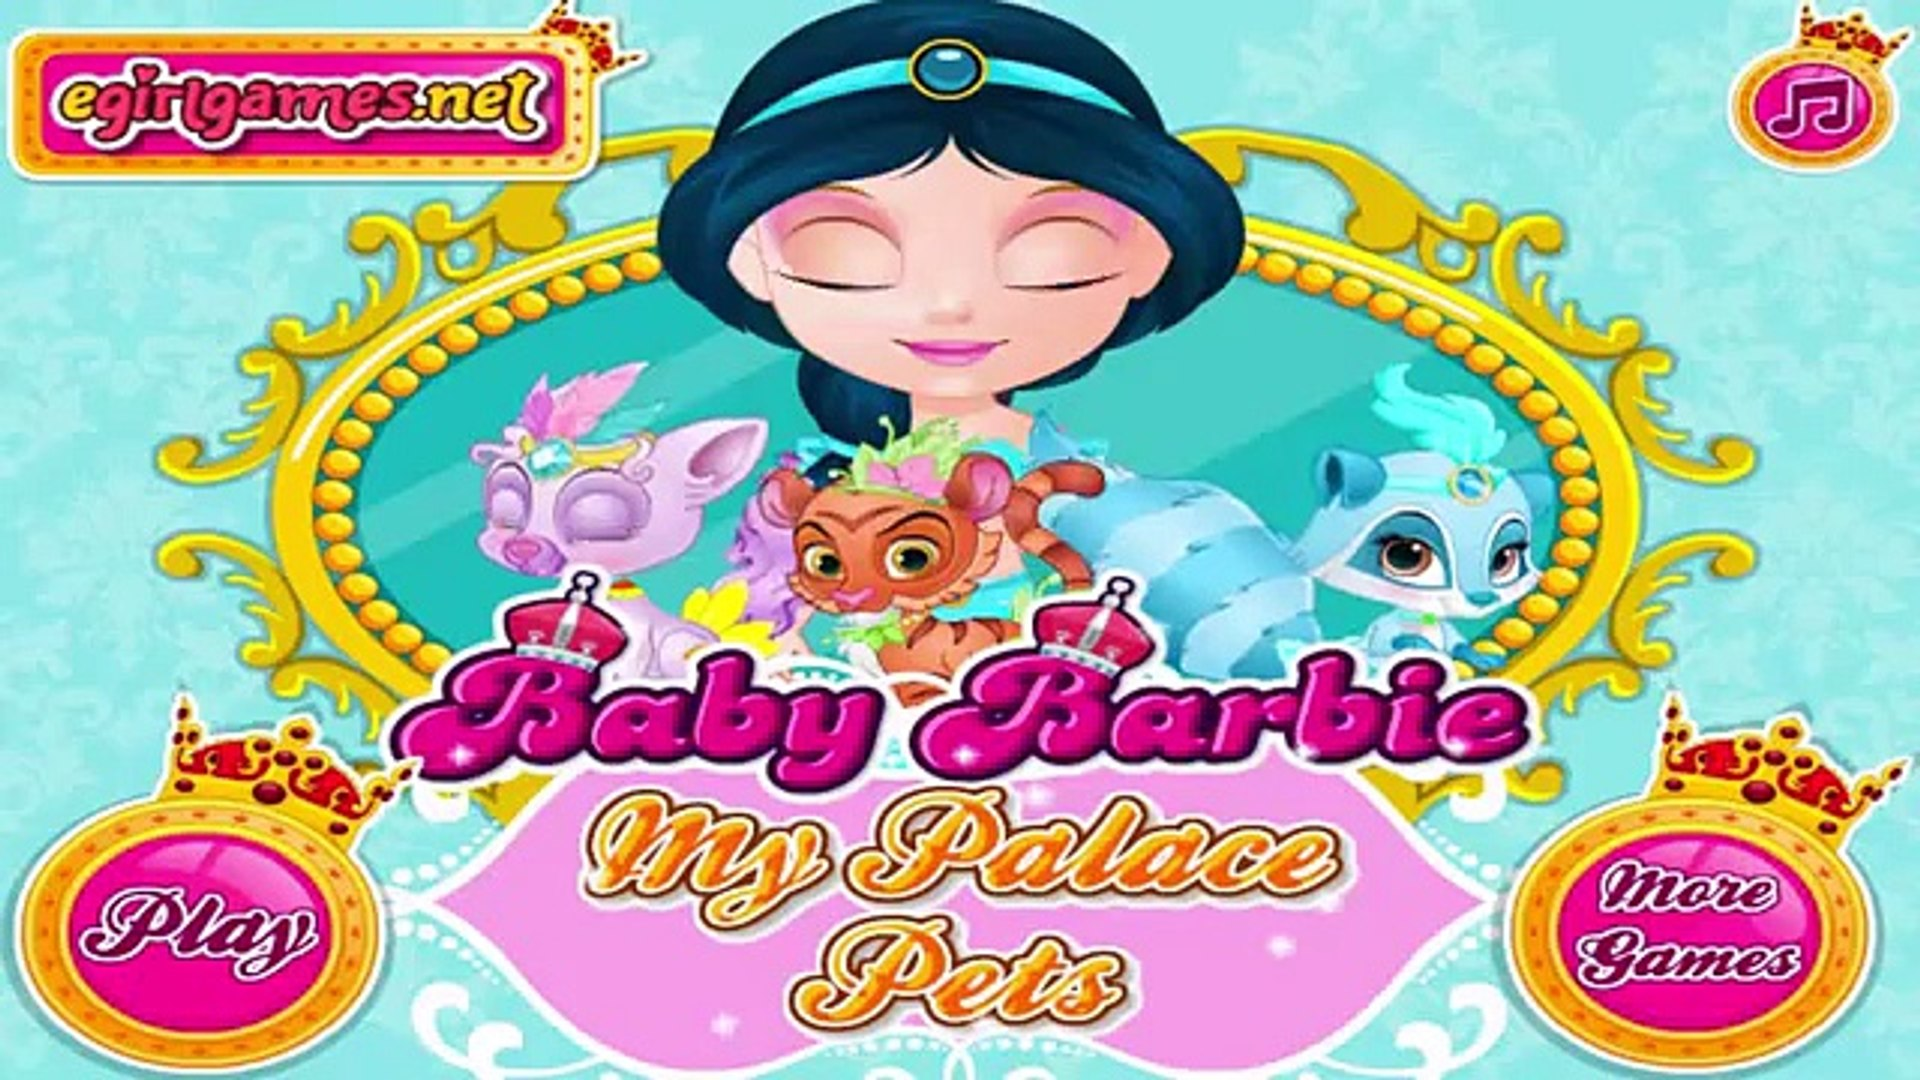 Baby Barbie My Palace Pets Barbie Games For Girls